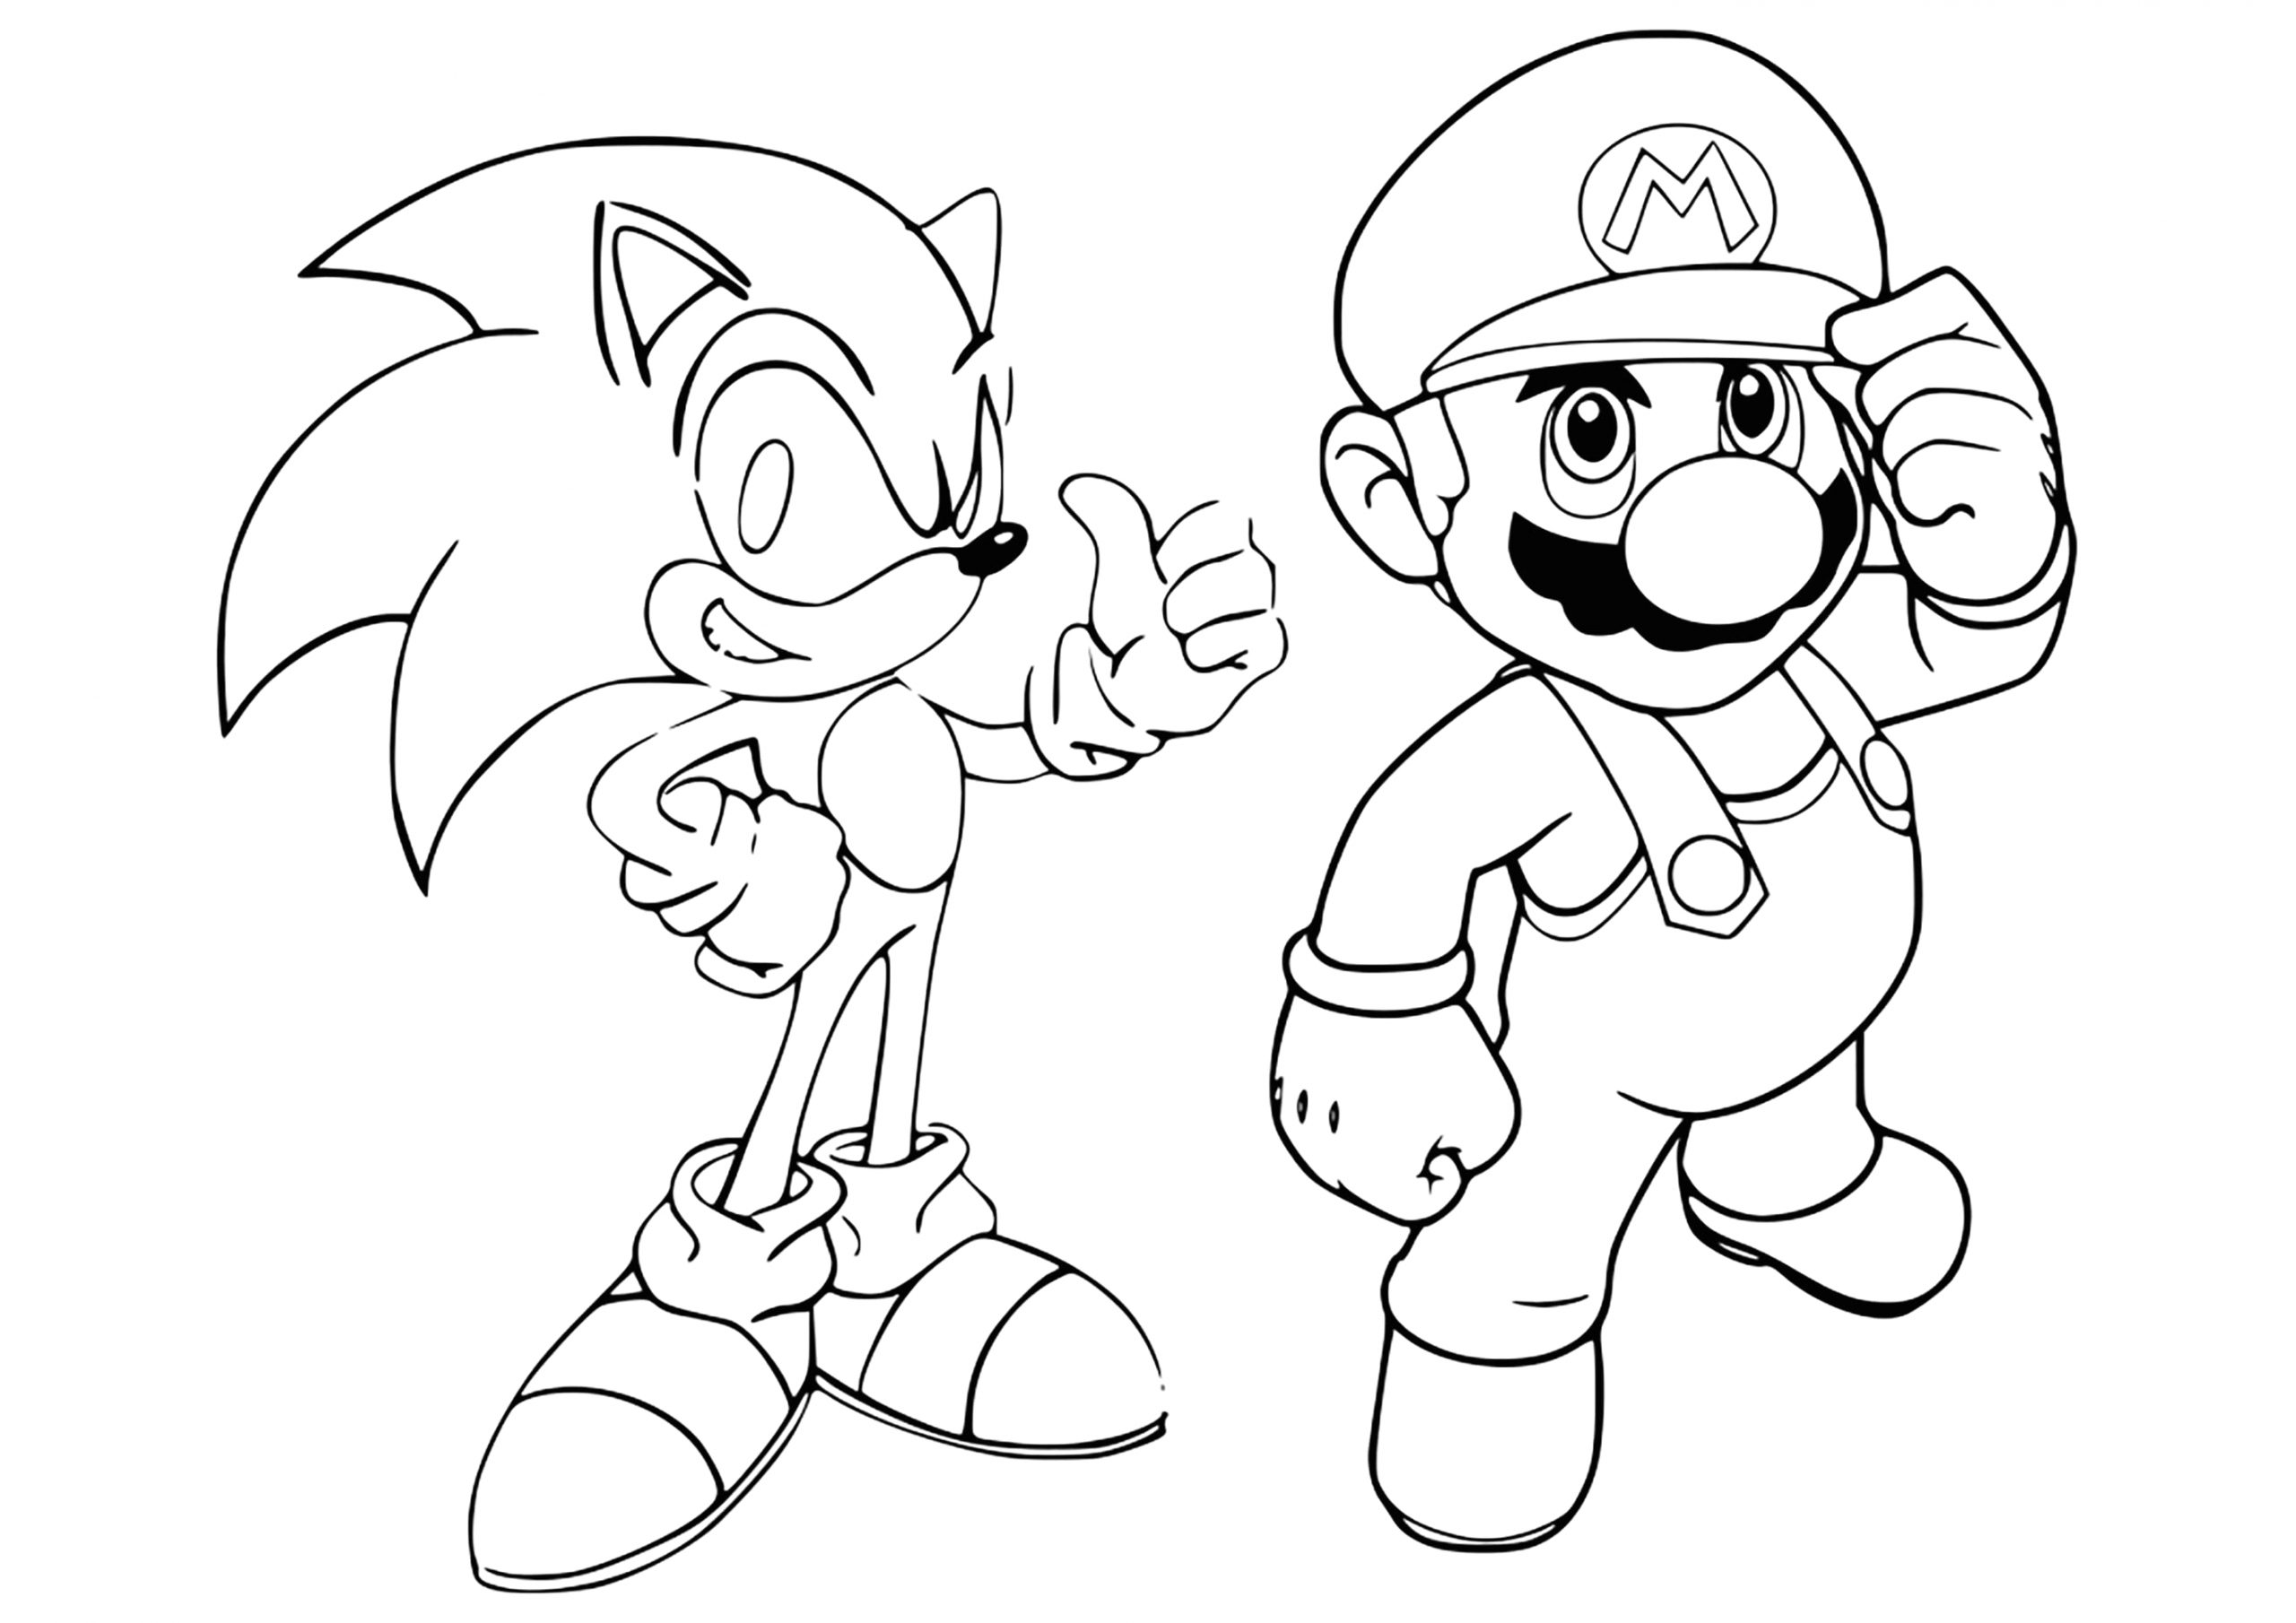 Mario and sonic Coloring Pages to Print Mario & sonic Coloring Page Mario Bros Kids Coloring Pages